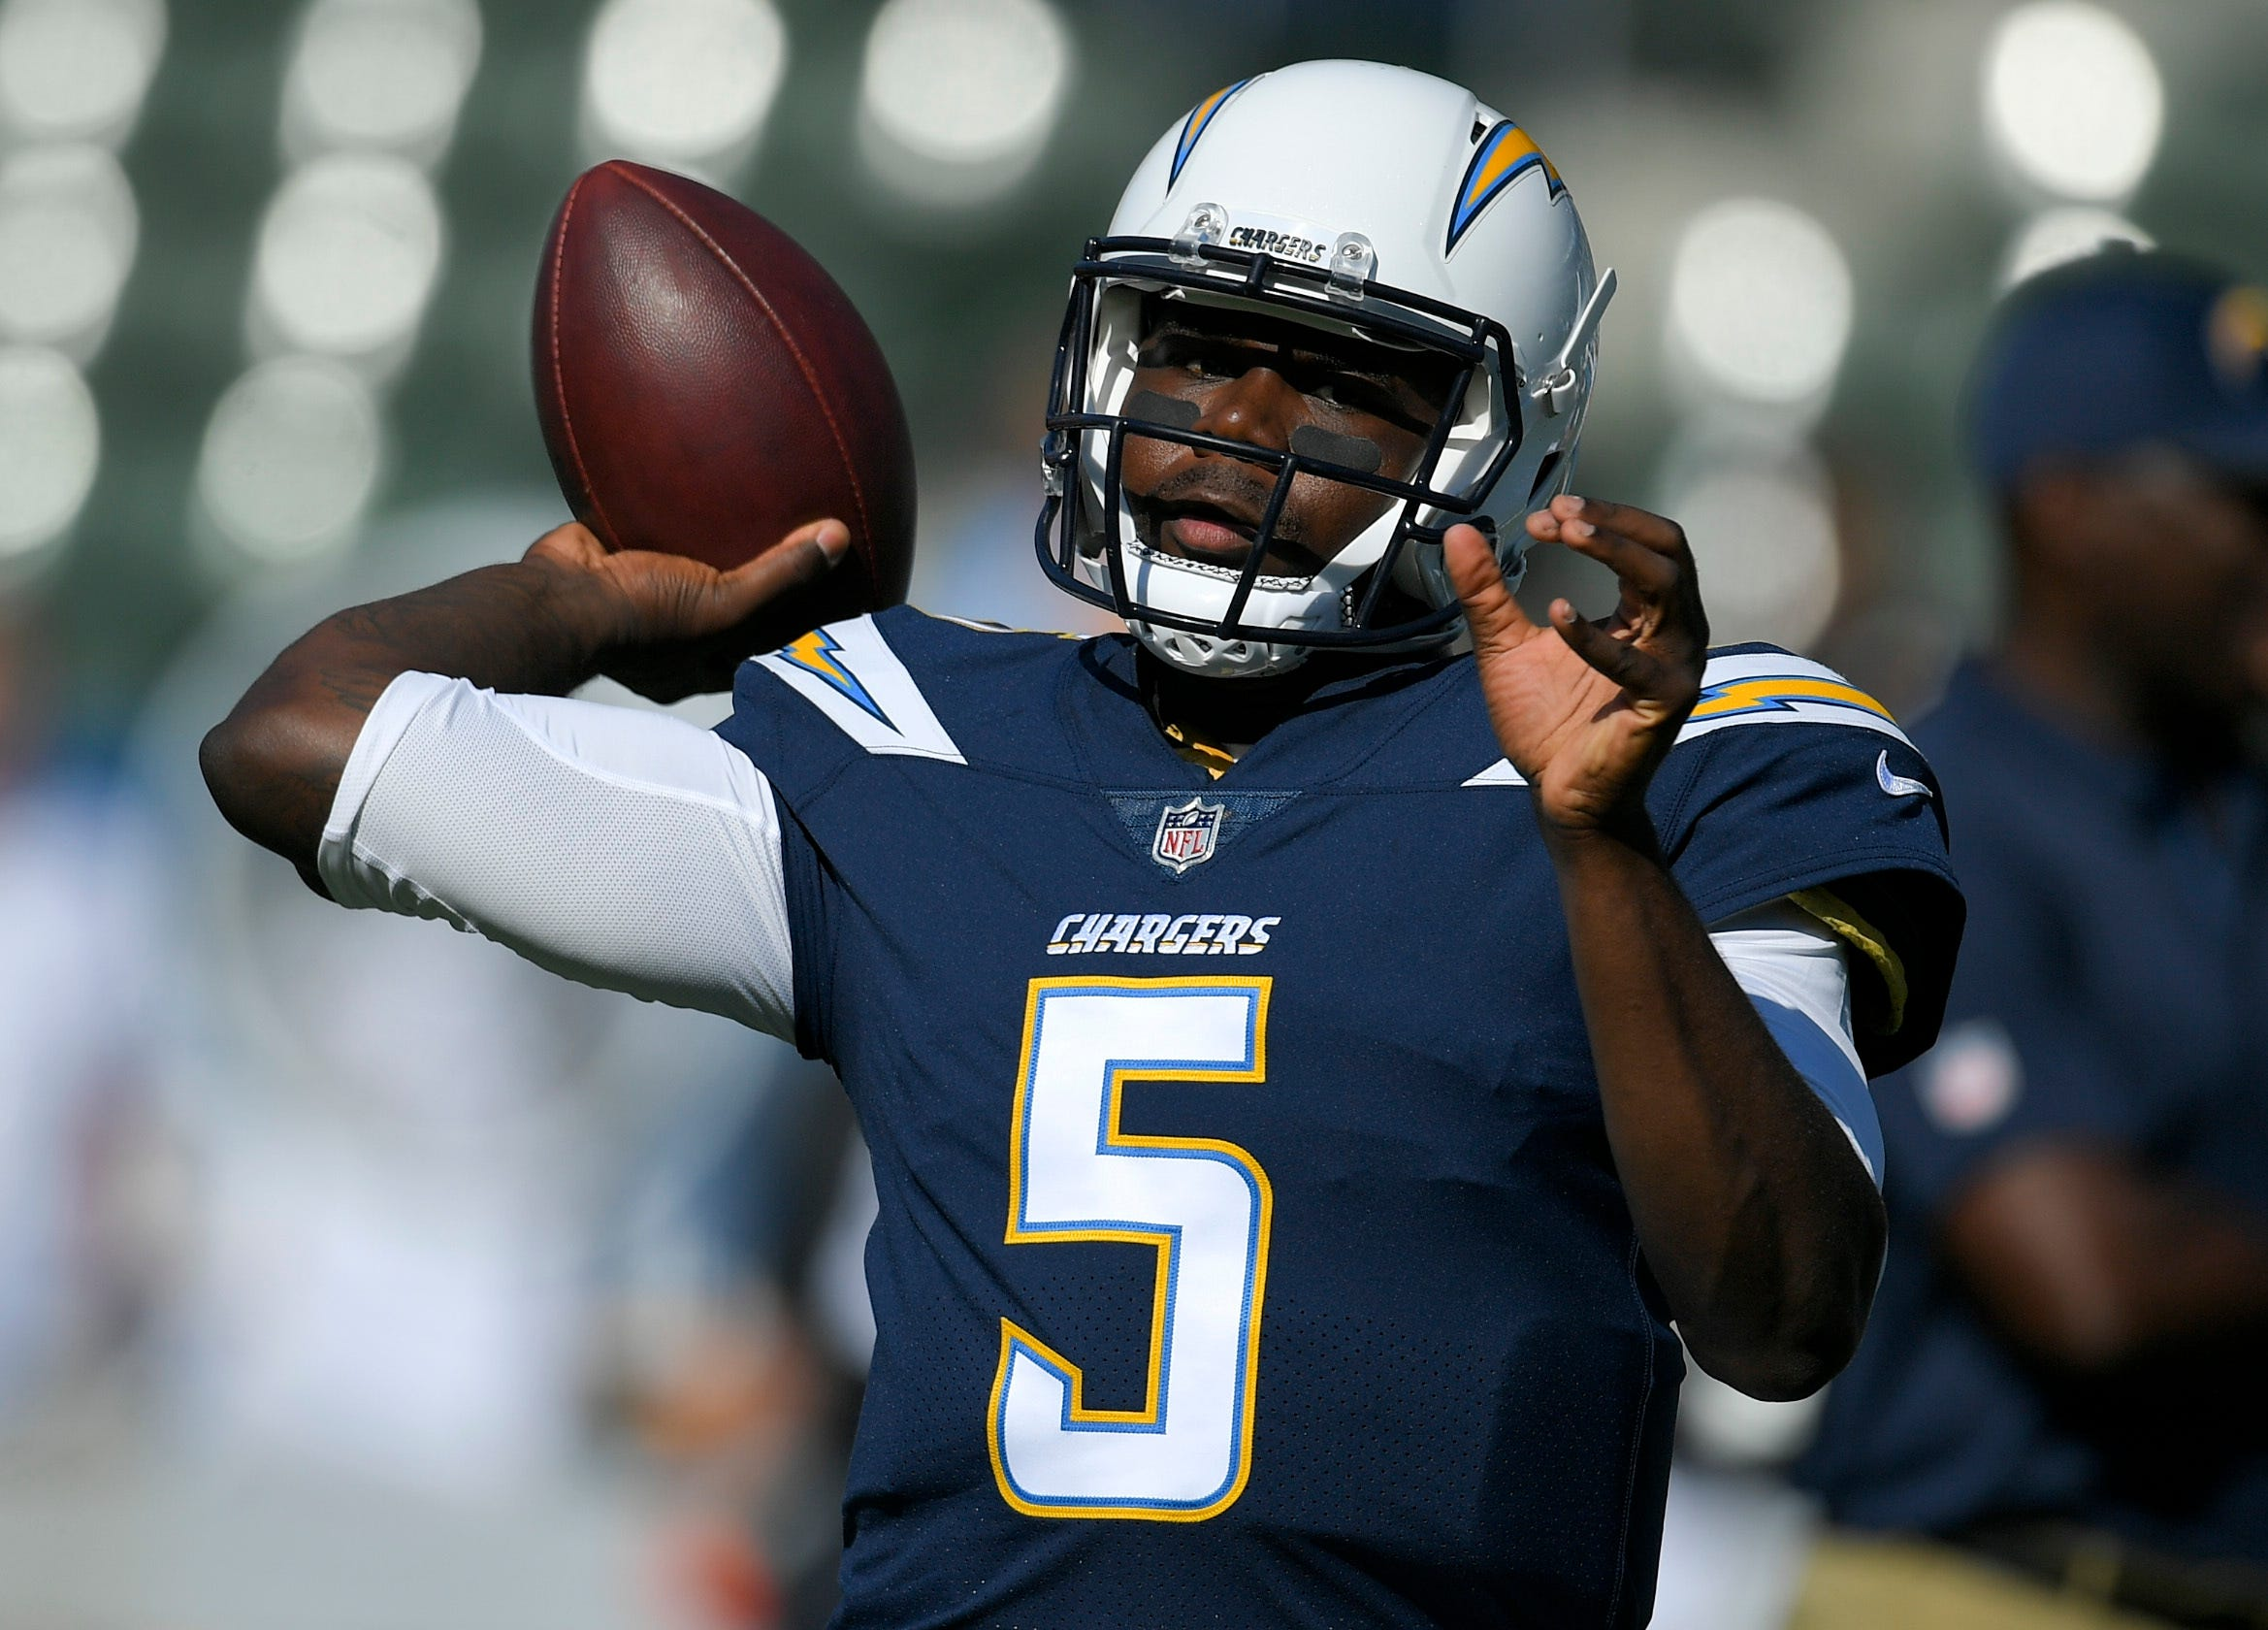 Chargers' Jones, Smith push to back up dependable Rivers